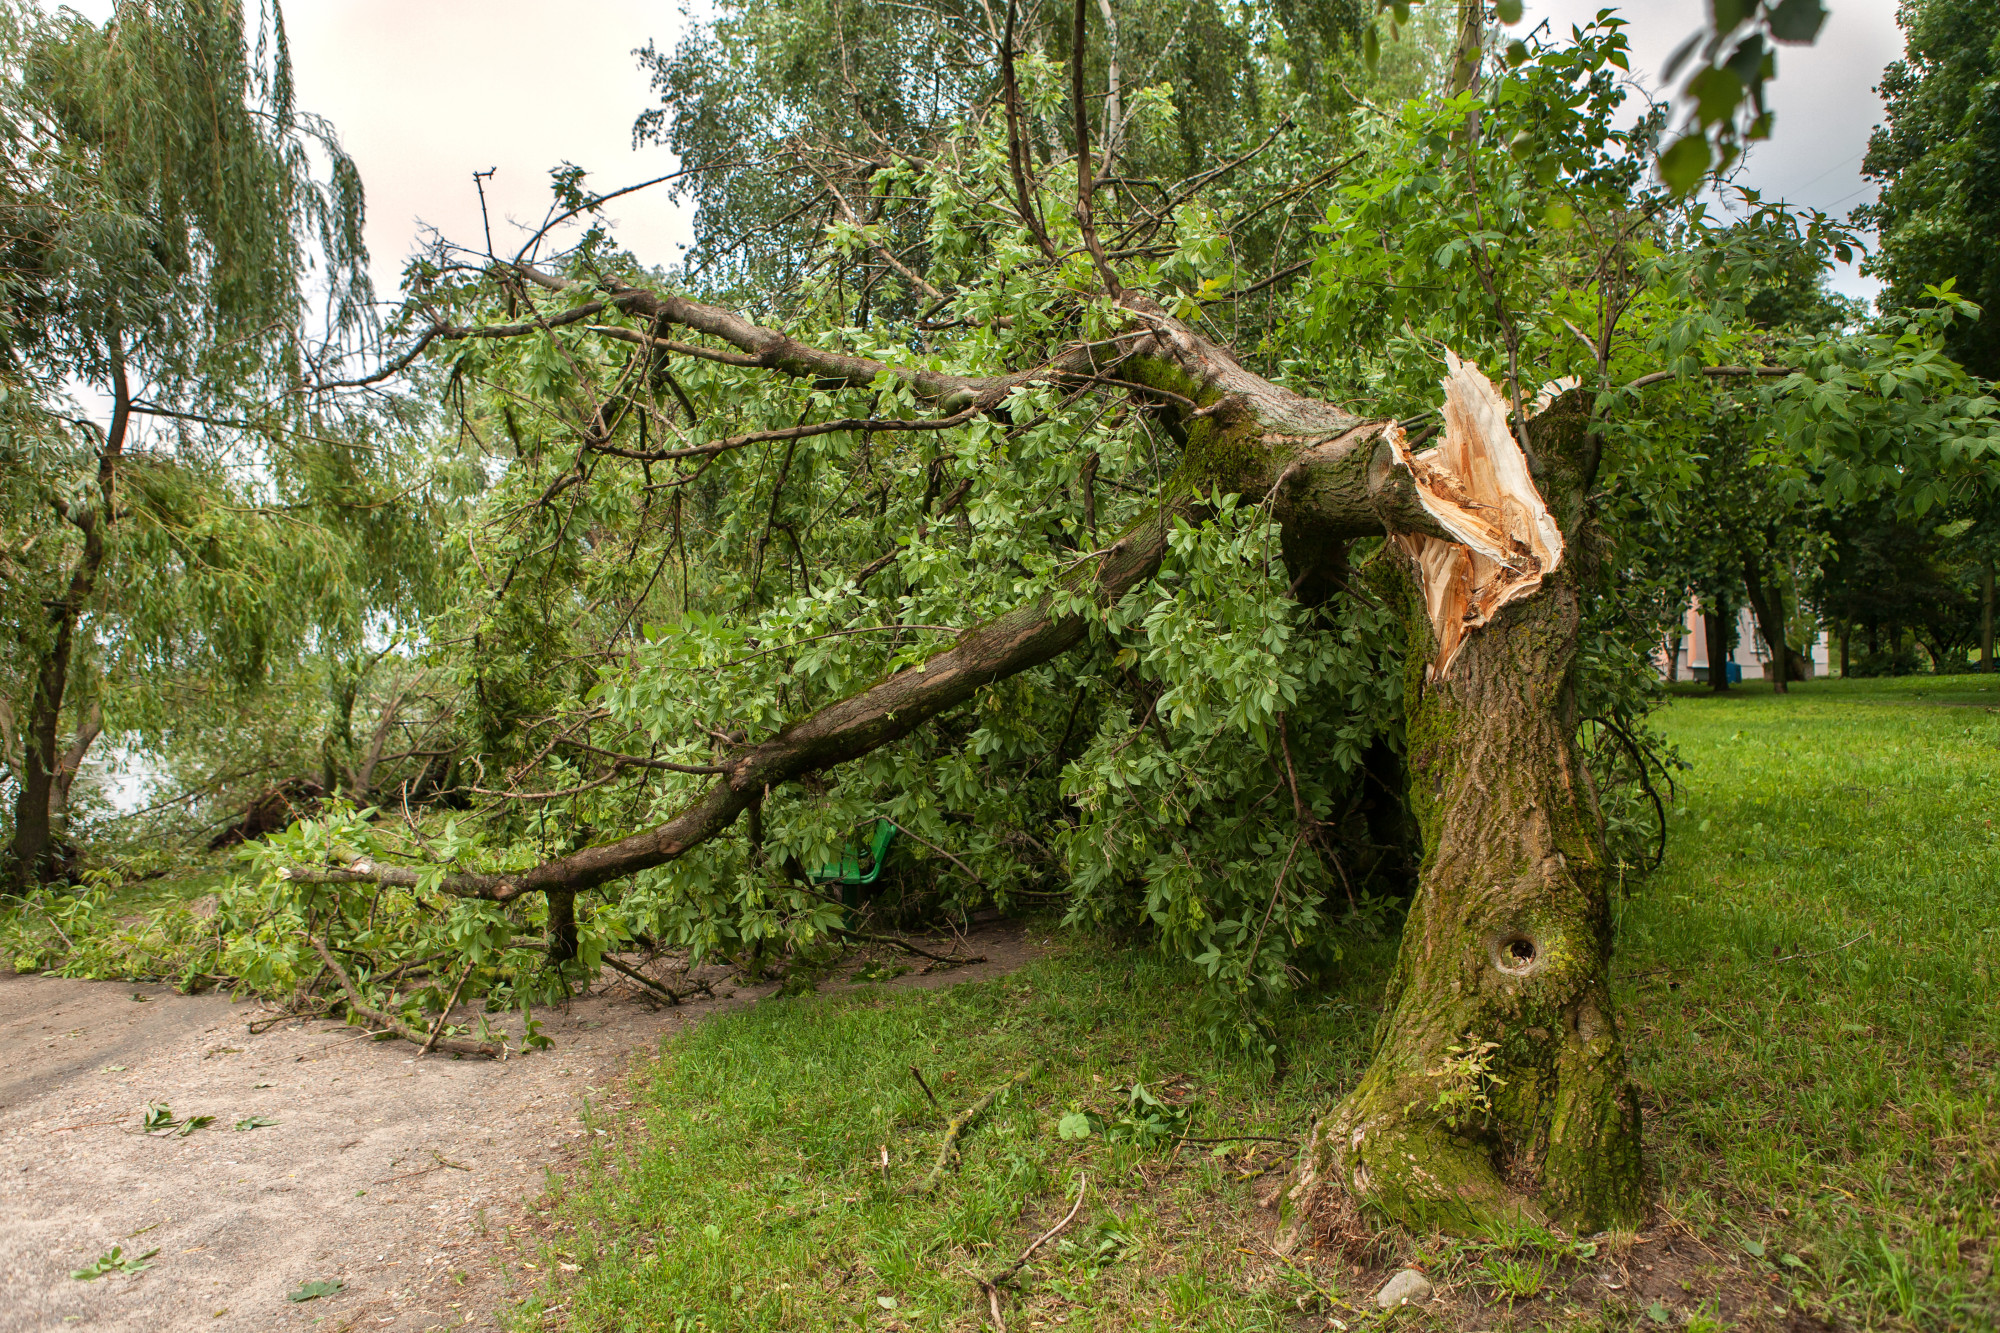 How Much Does It Cost to Have a Tree Removed?